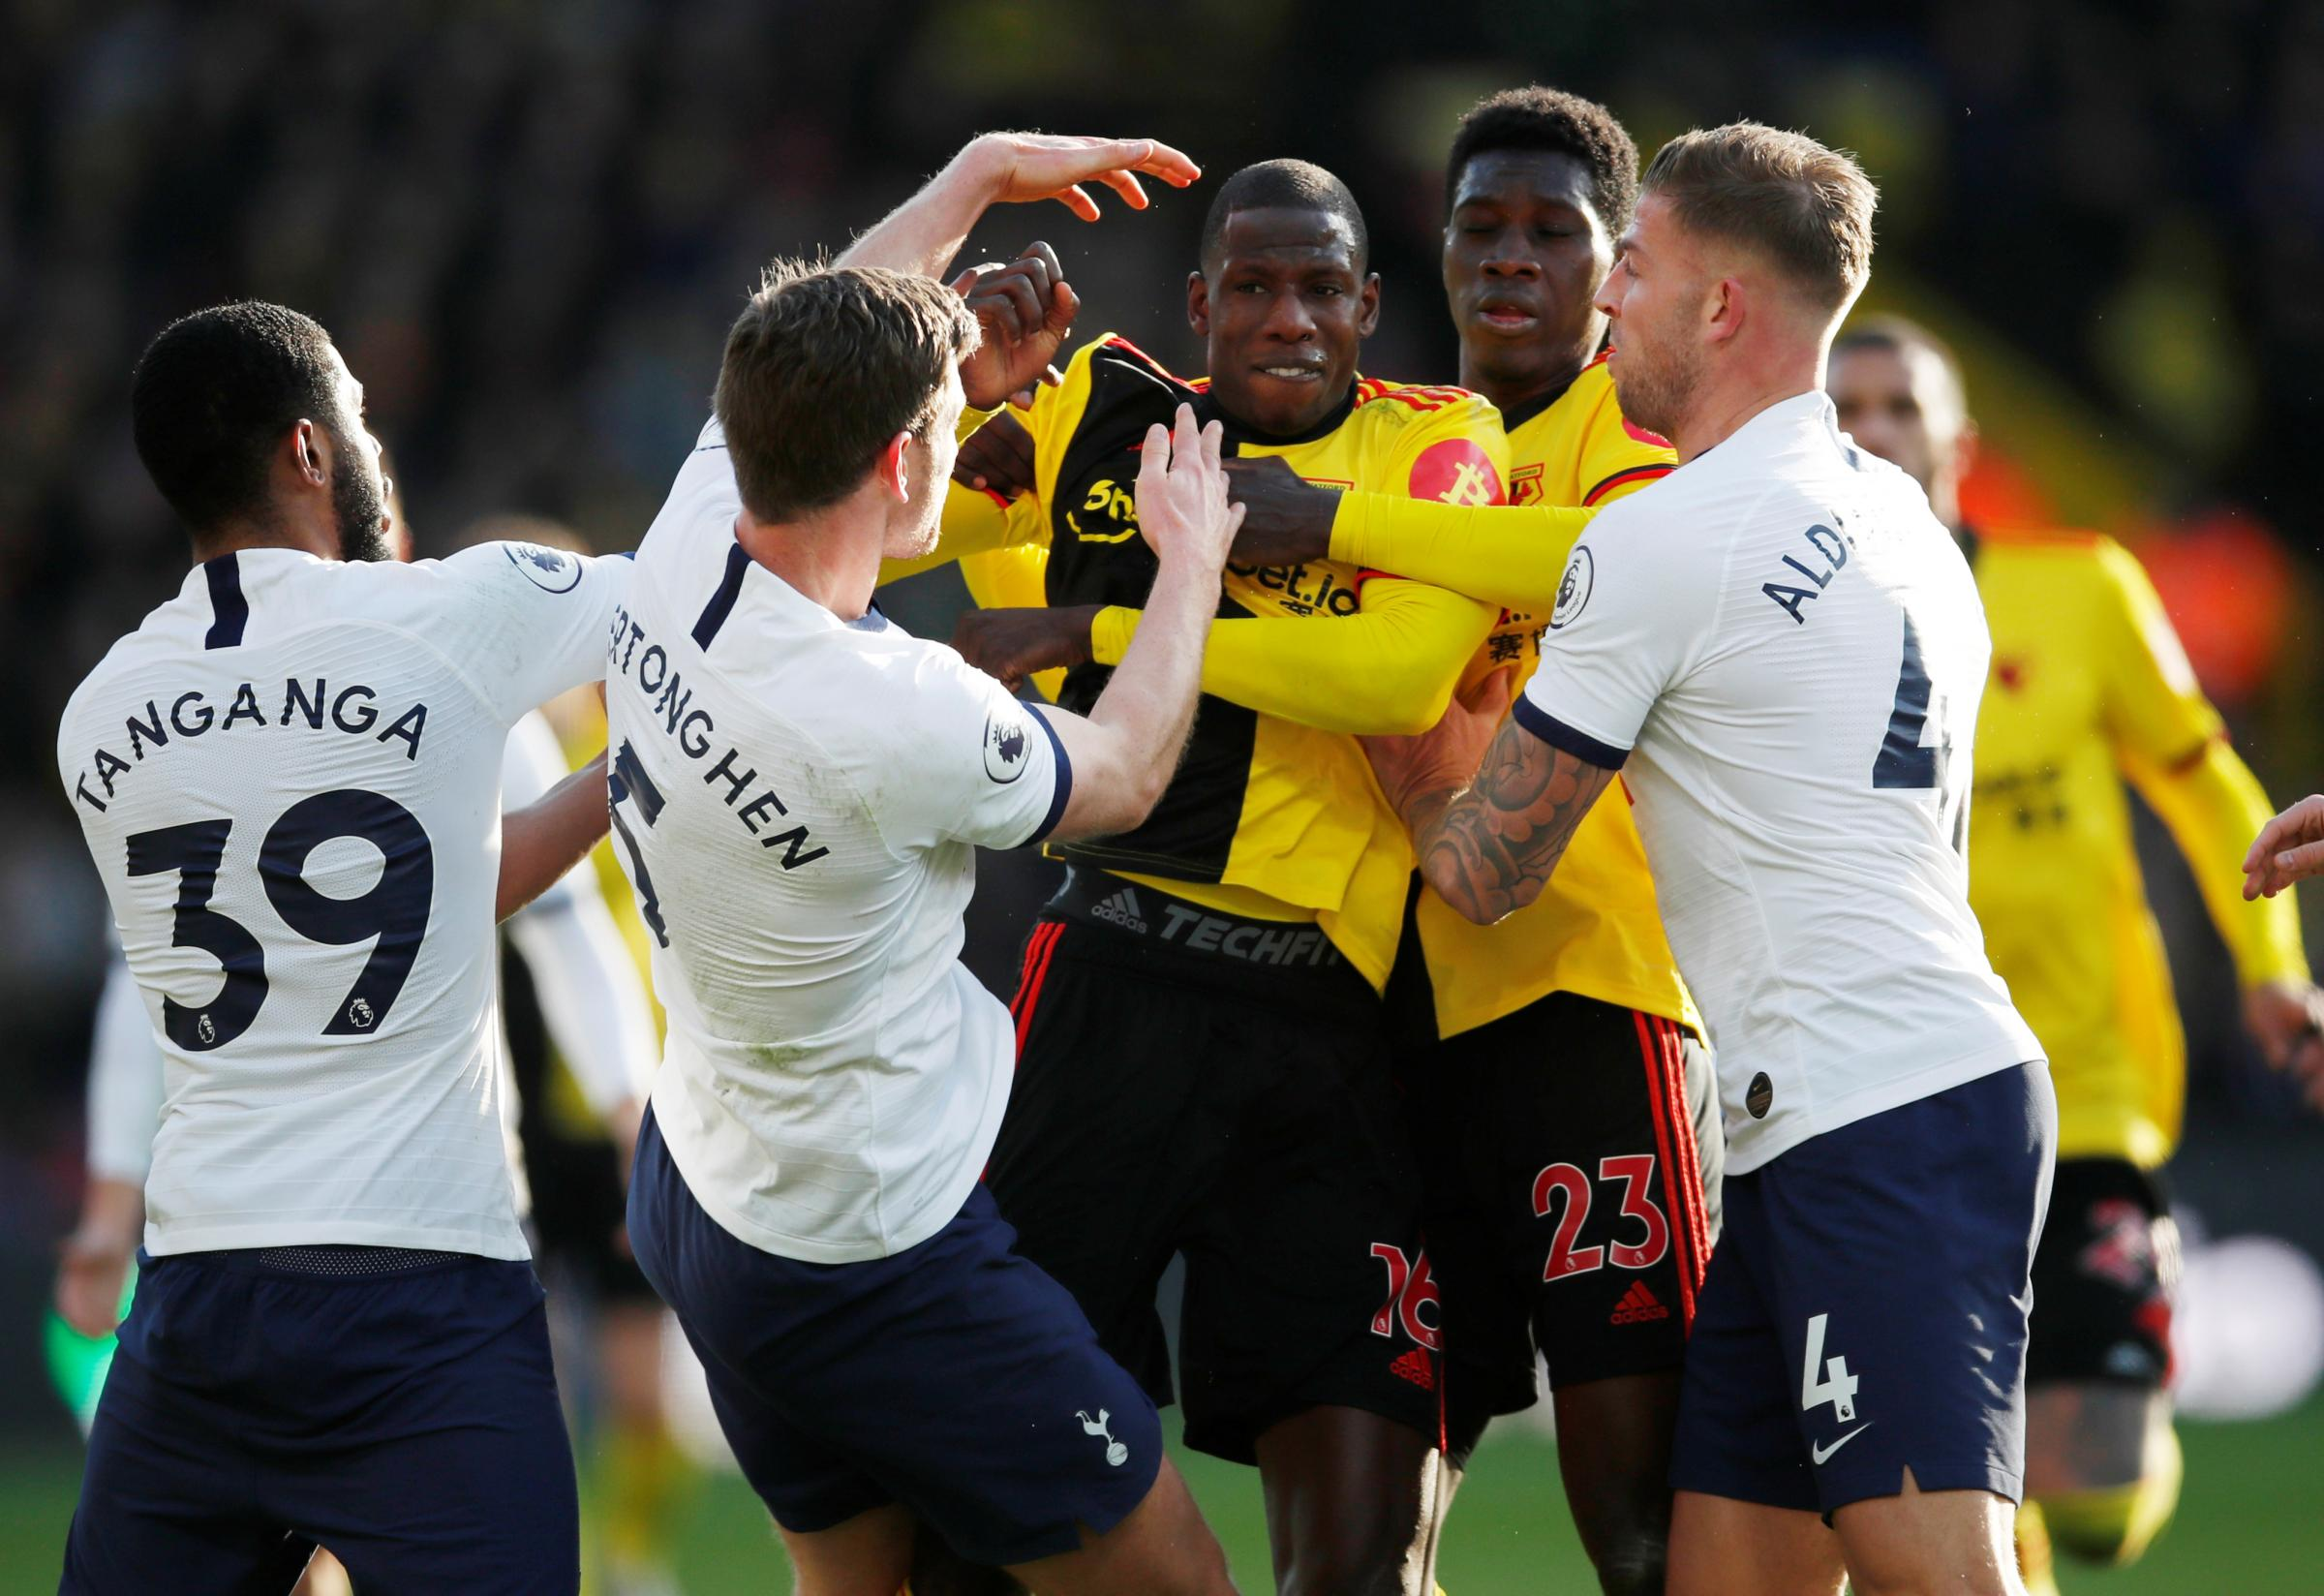 Watford continue push for survival with point against Tottenham Hotspur